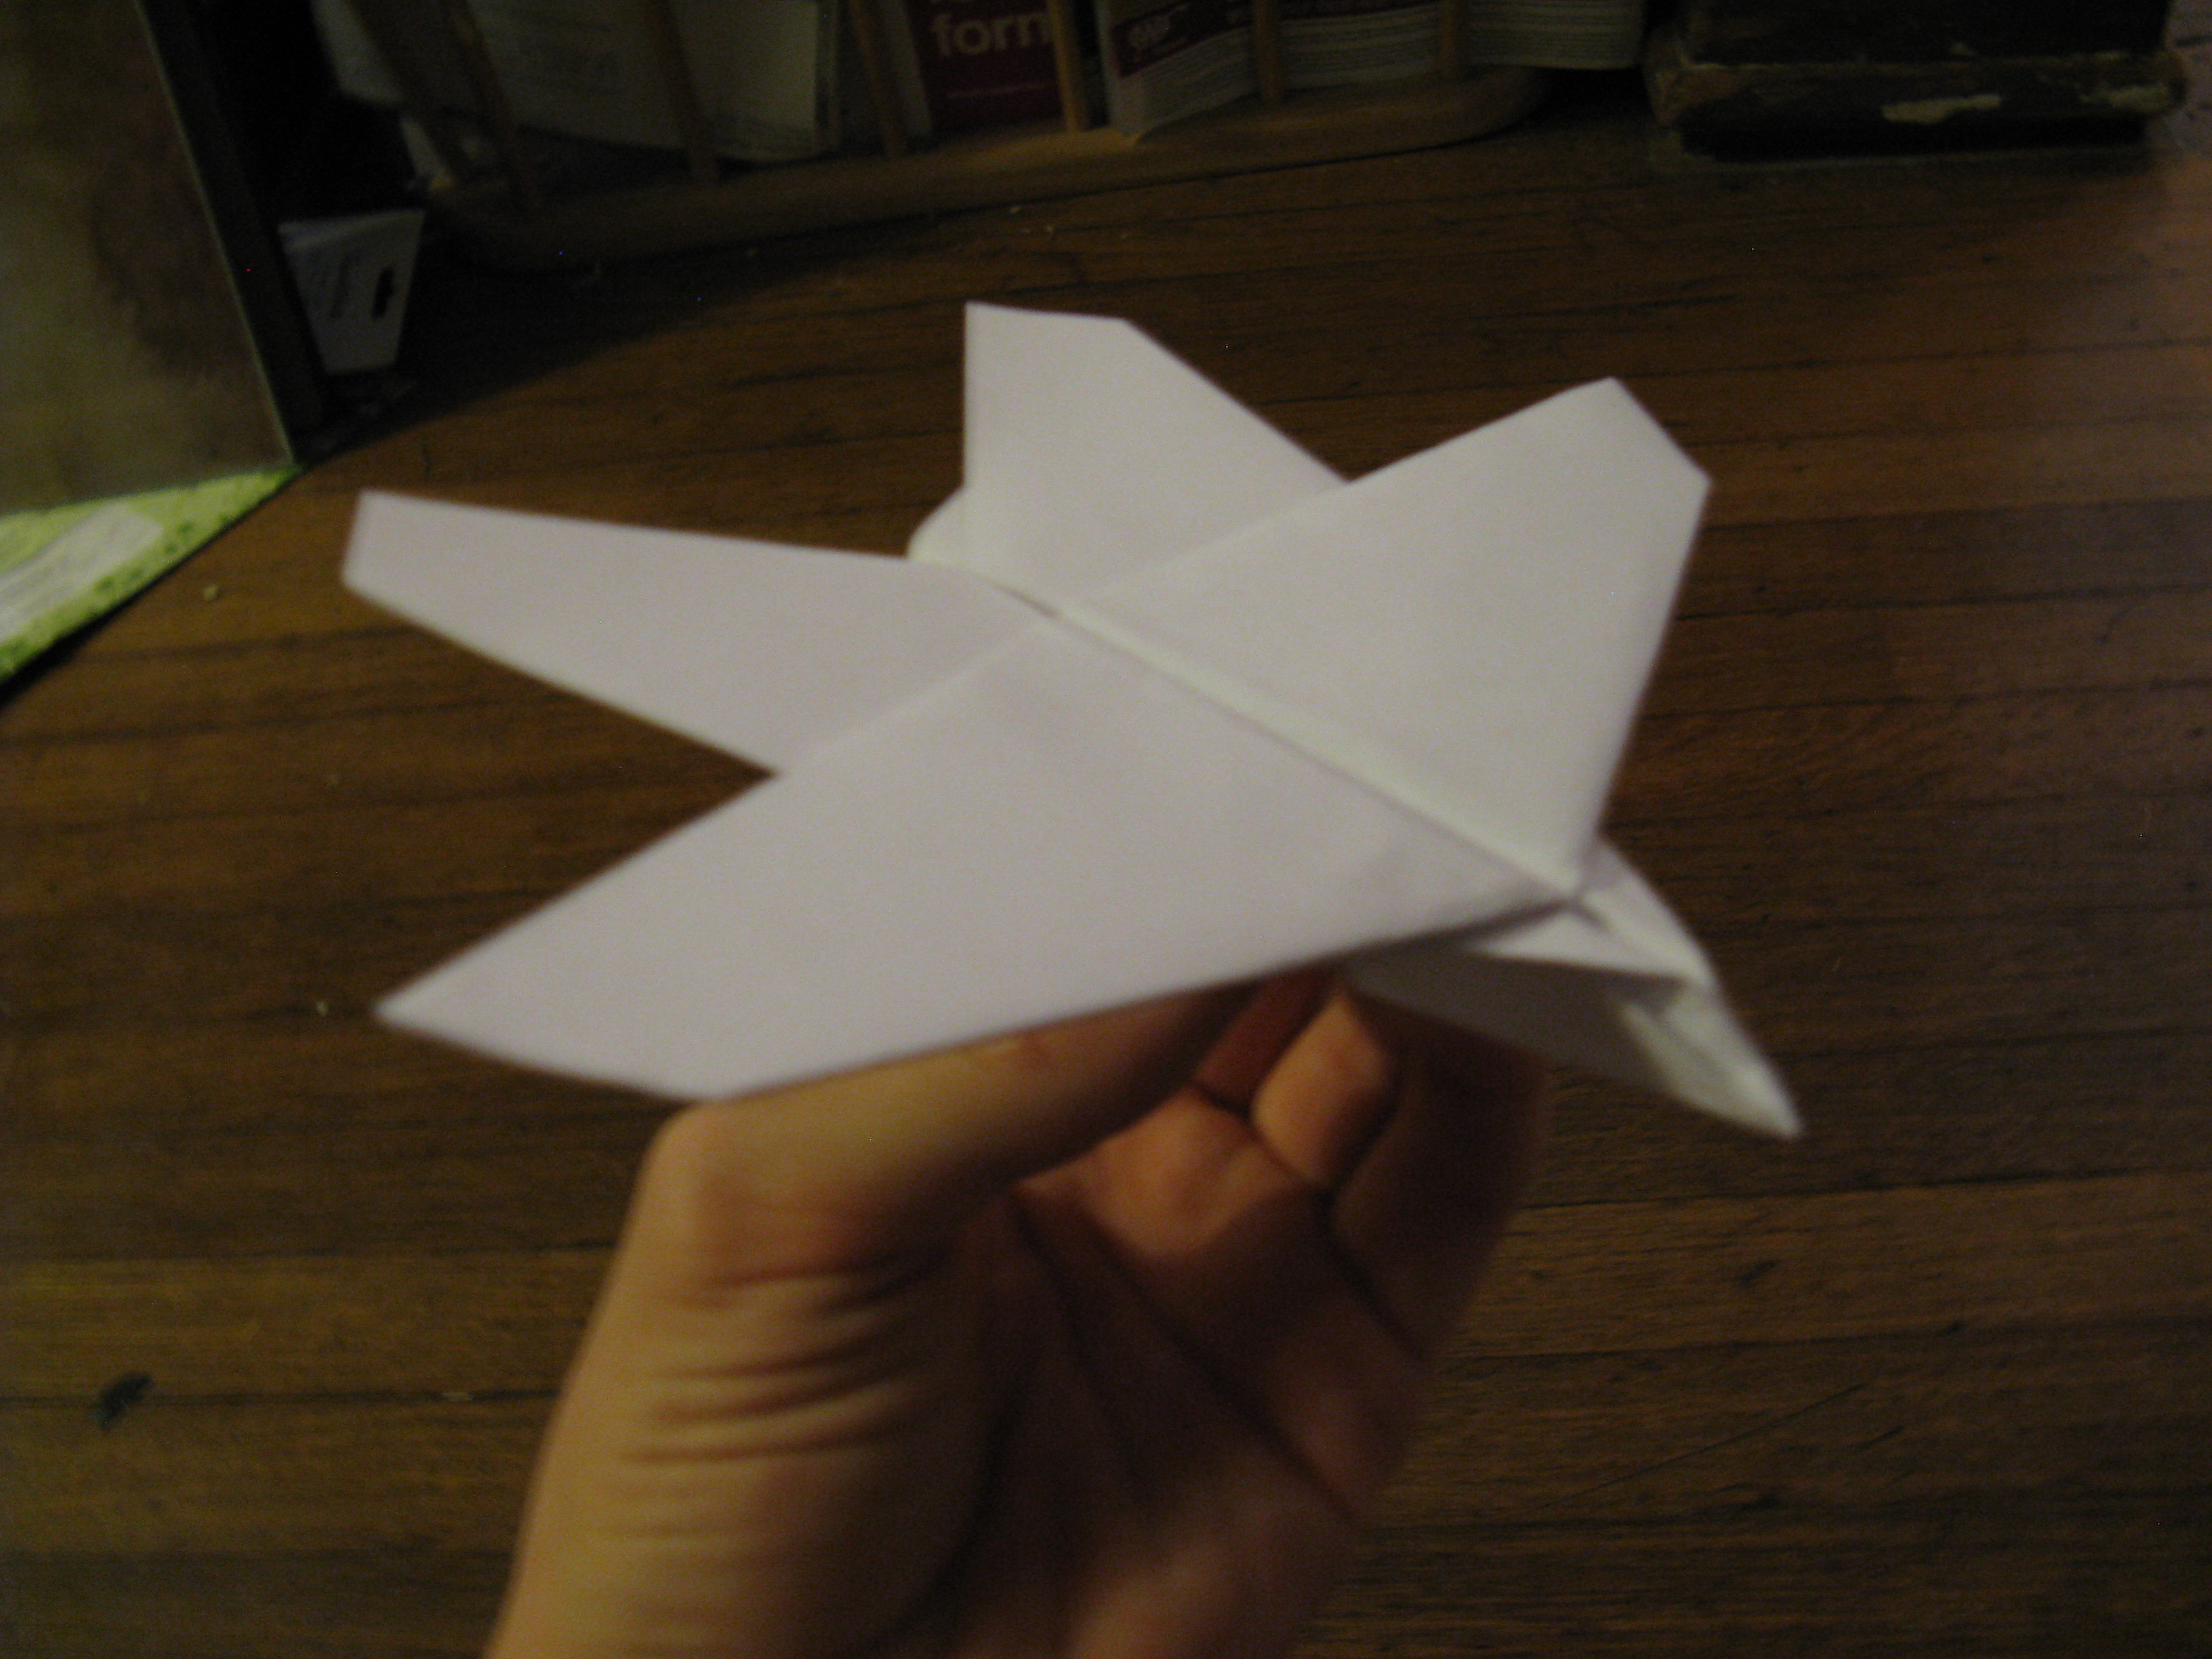 Picture of Paper Plane I Invented #1